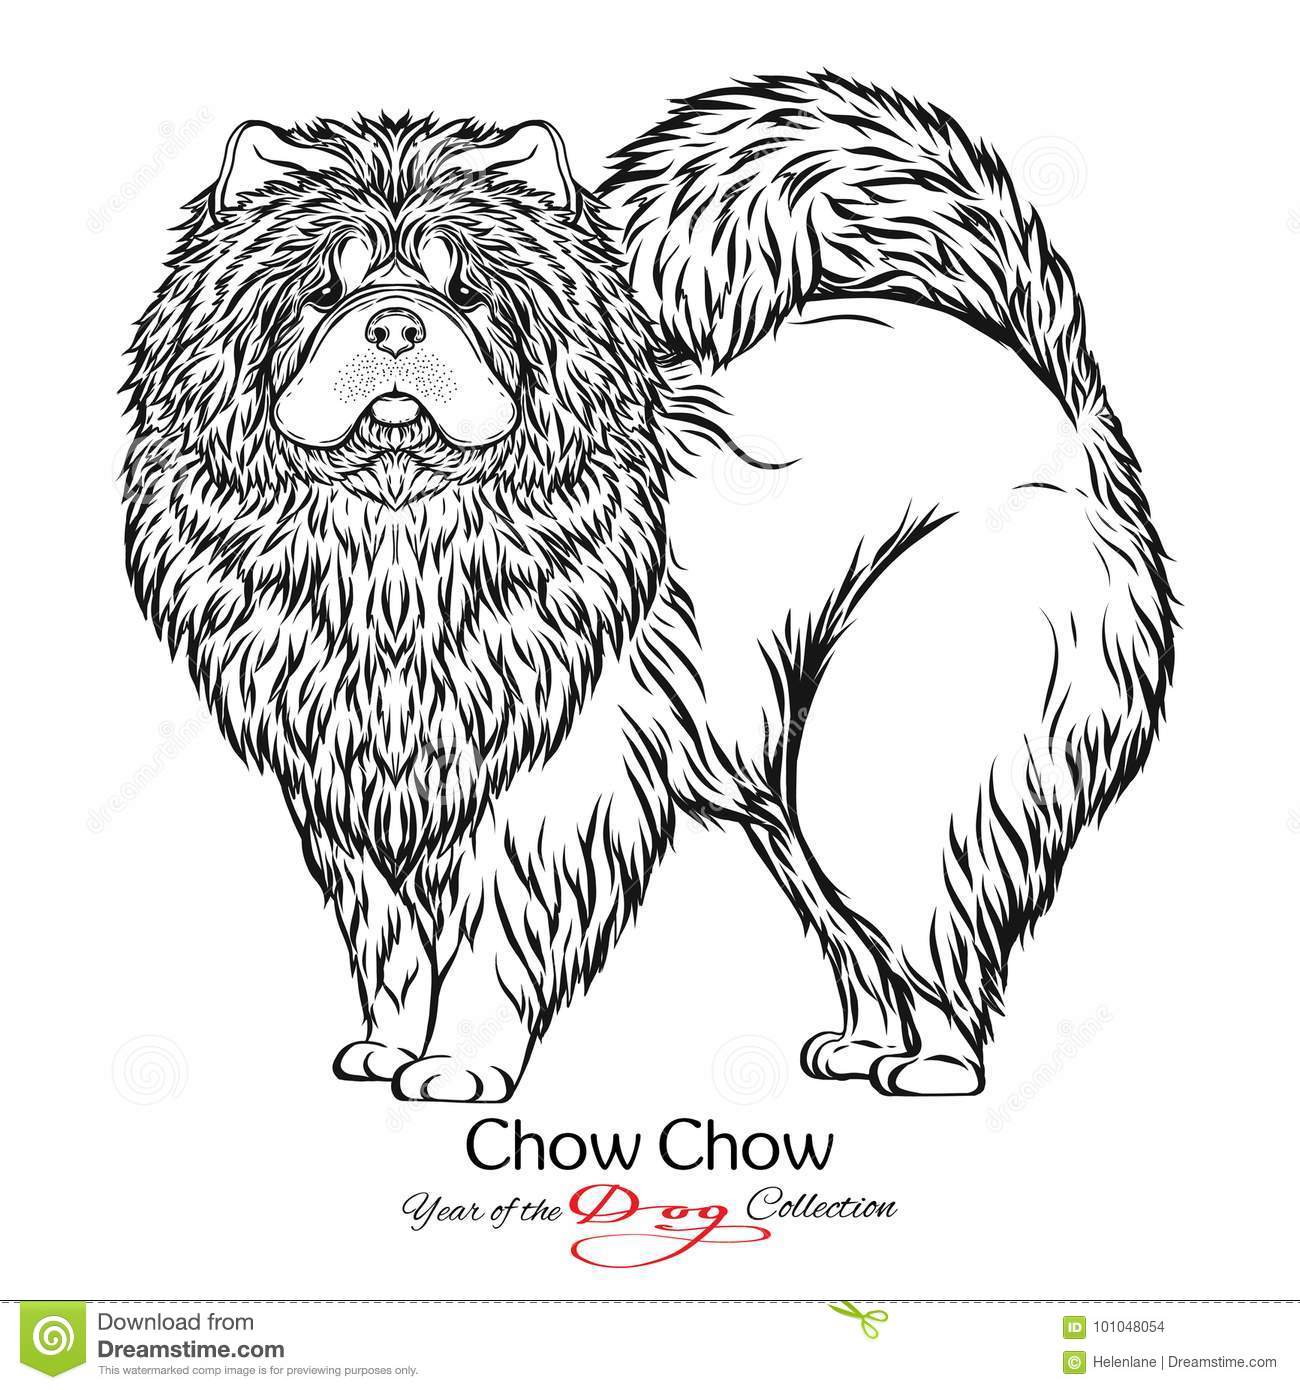 Chow Chow Black And White Graphic Drawing Of A Dog Stock Vector